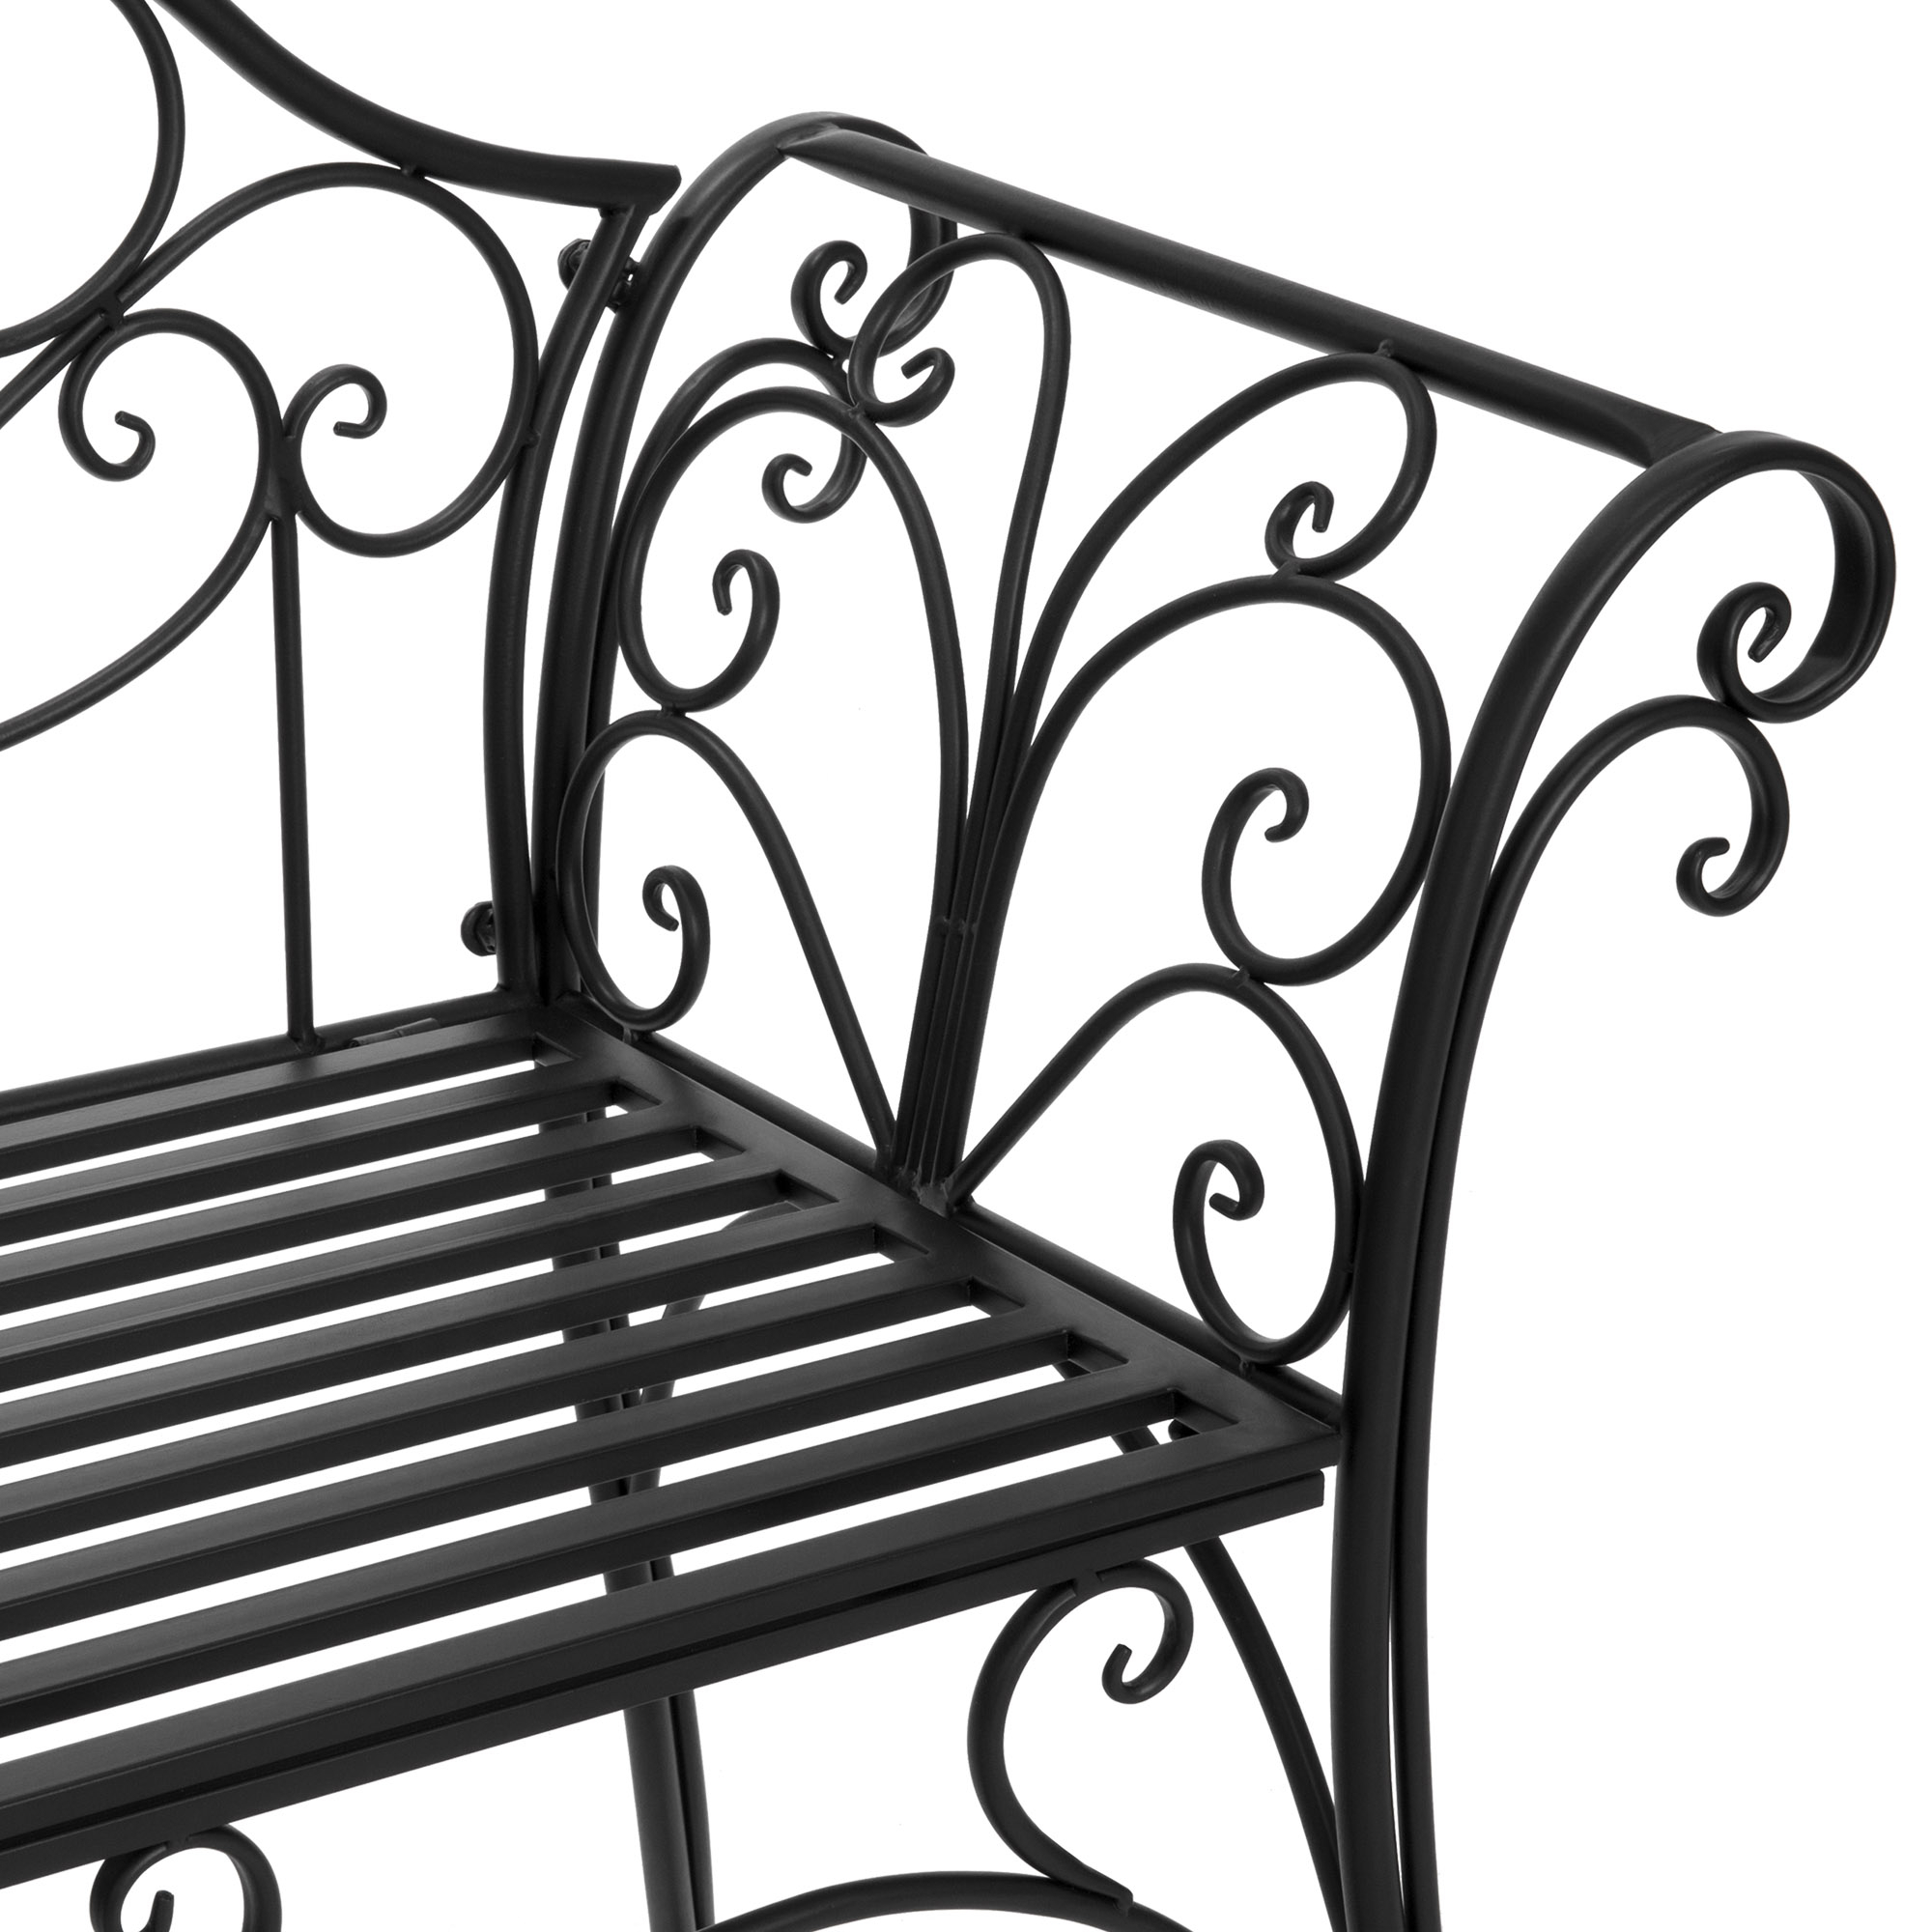 Swing Chair 2 Person Garden Bench 52 Inch Decorative Scroll Pertaining To 2 Person Gray Steel Outdoor Swings (View 12 of 25)